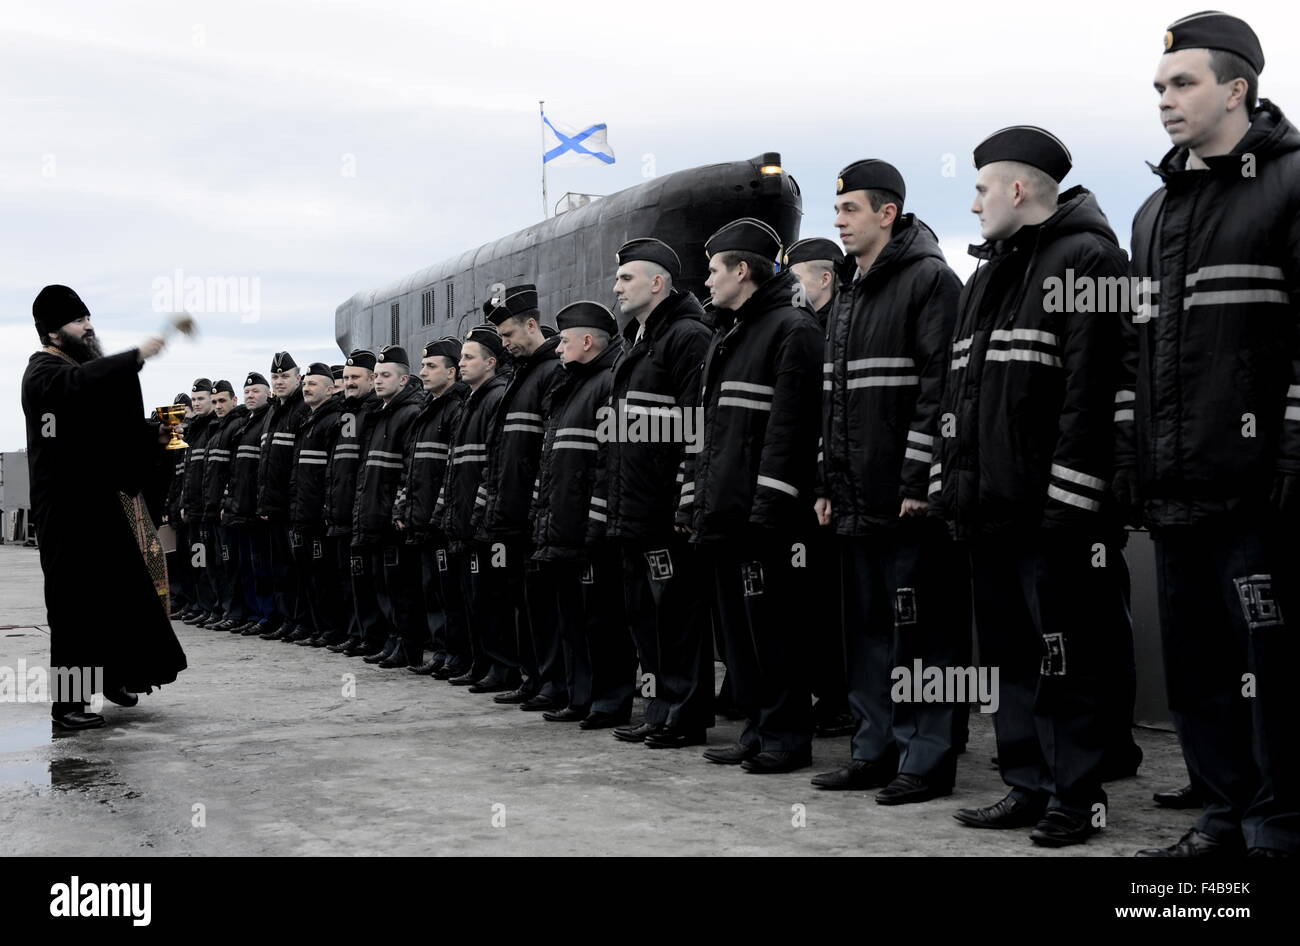 Murmansk Region, Russia. 15th Oct, 2015. A welcome ceremony for Russia's Yury Dolgoruky nuclear-powered ballistic - Stock Image